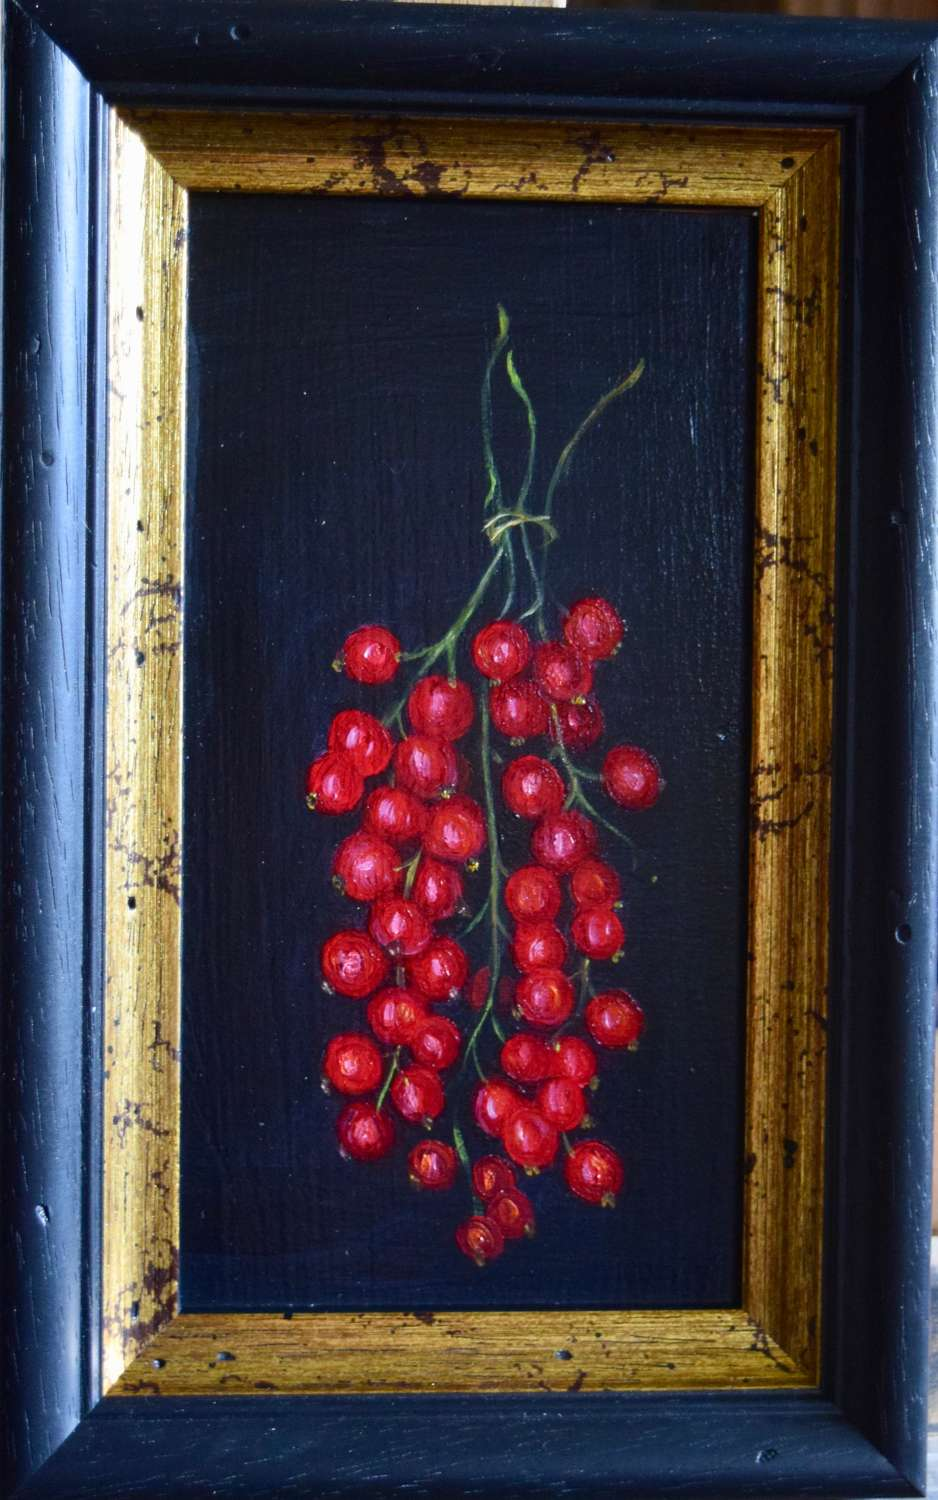 Bunch of red currants